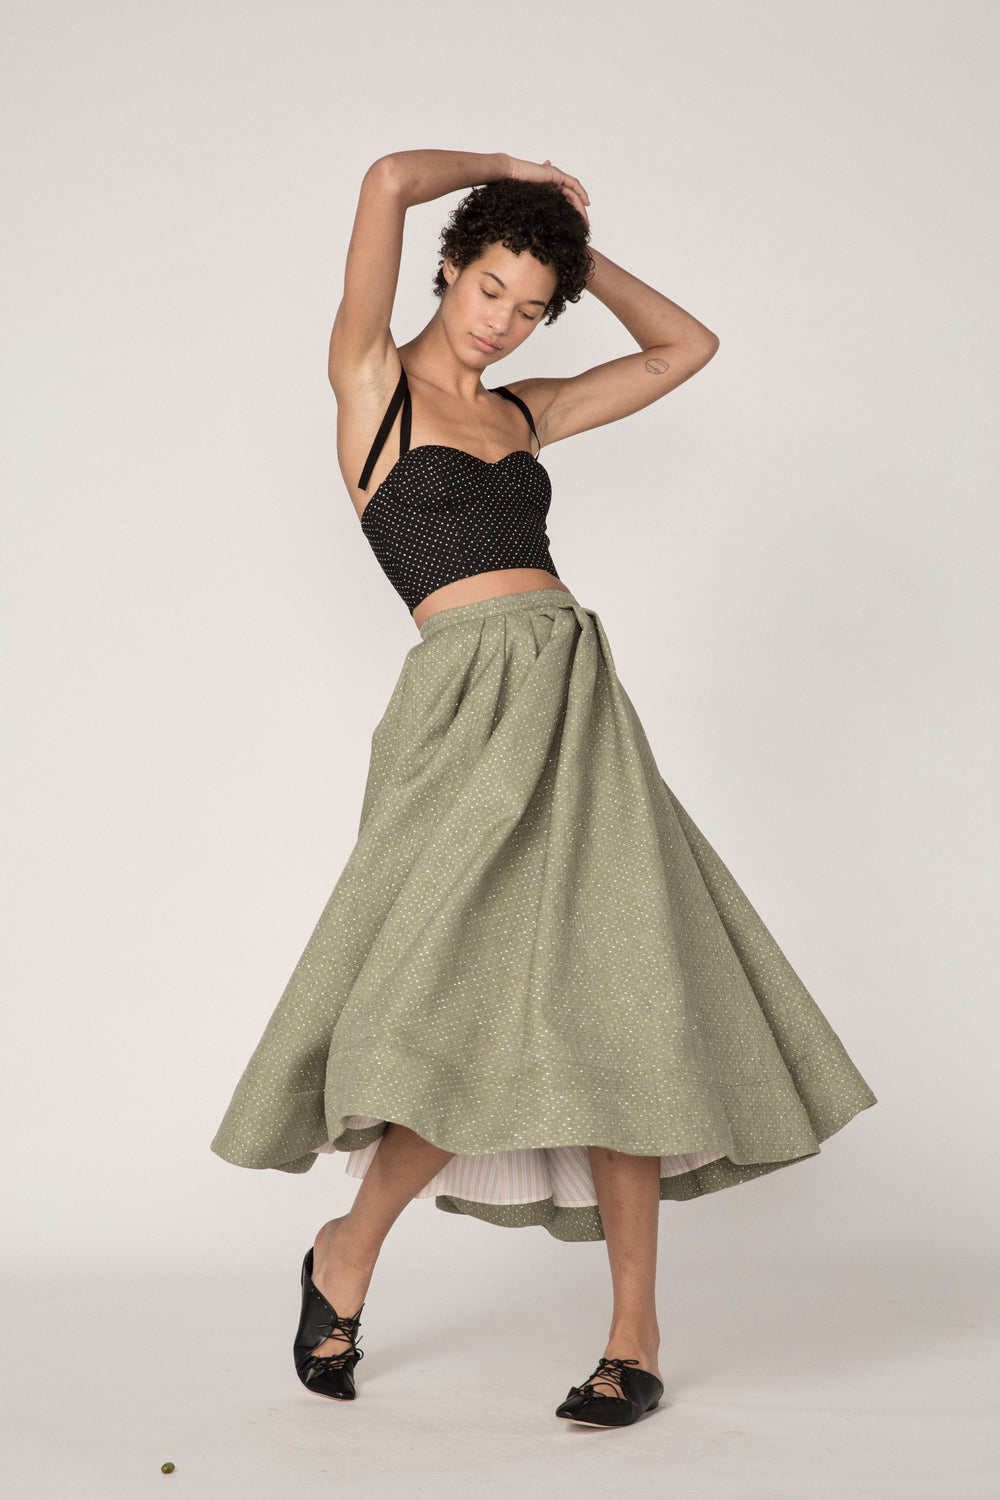 Rosie Assoulin Fall 2019 Full A-Line Skirt. A-line midi skirt. Glitter polka dots. Flared hem. Striped lining. Green. 66% Polyester, 34% Cotton. Sizes 0 - 12.